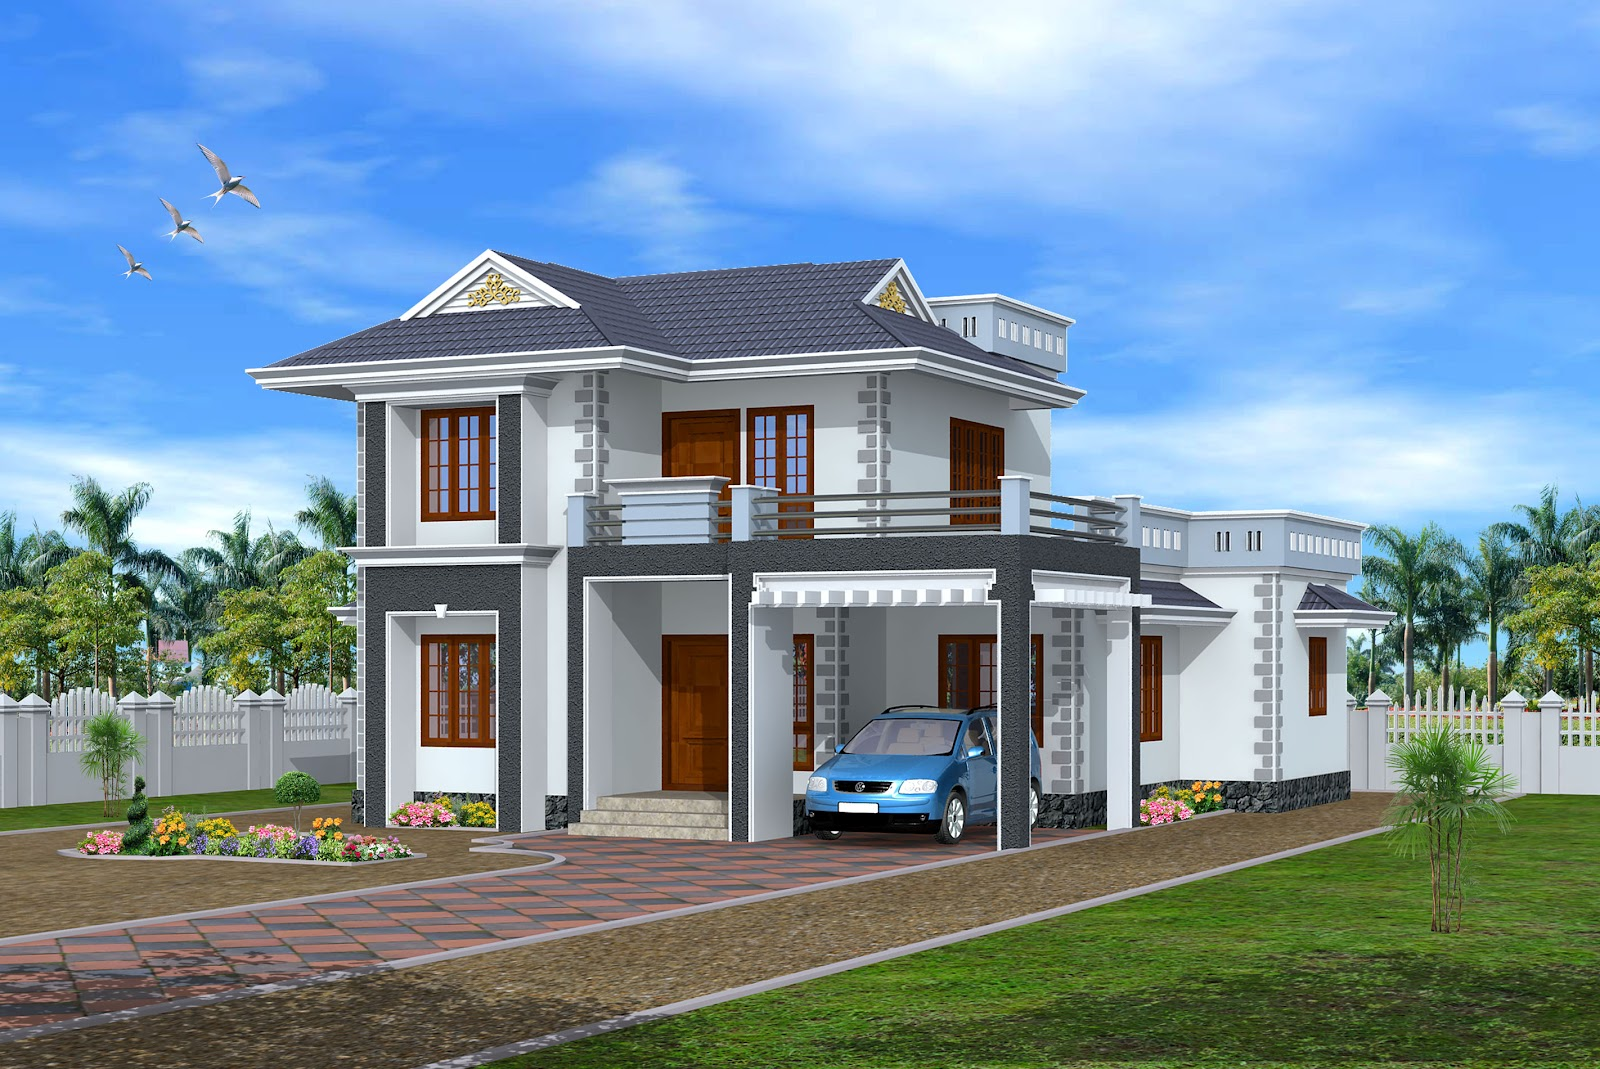 New home designs latest modern homes exterior designs views for Designing your new home